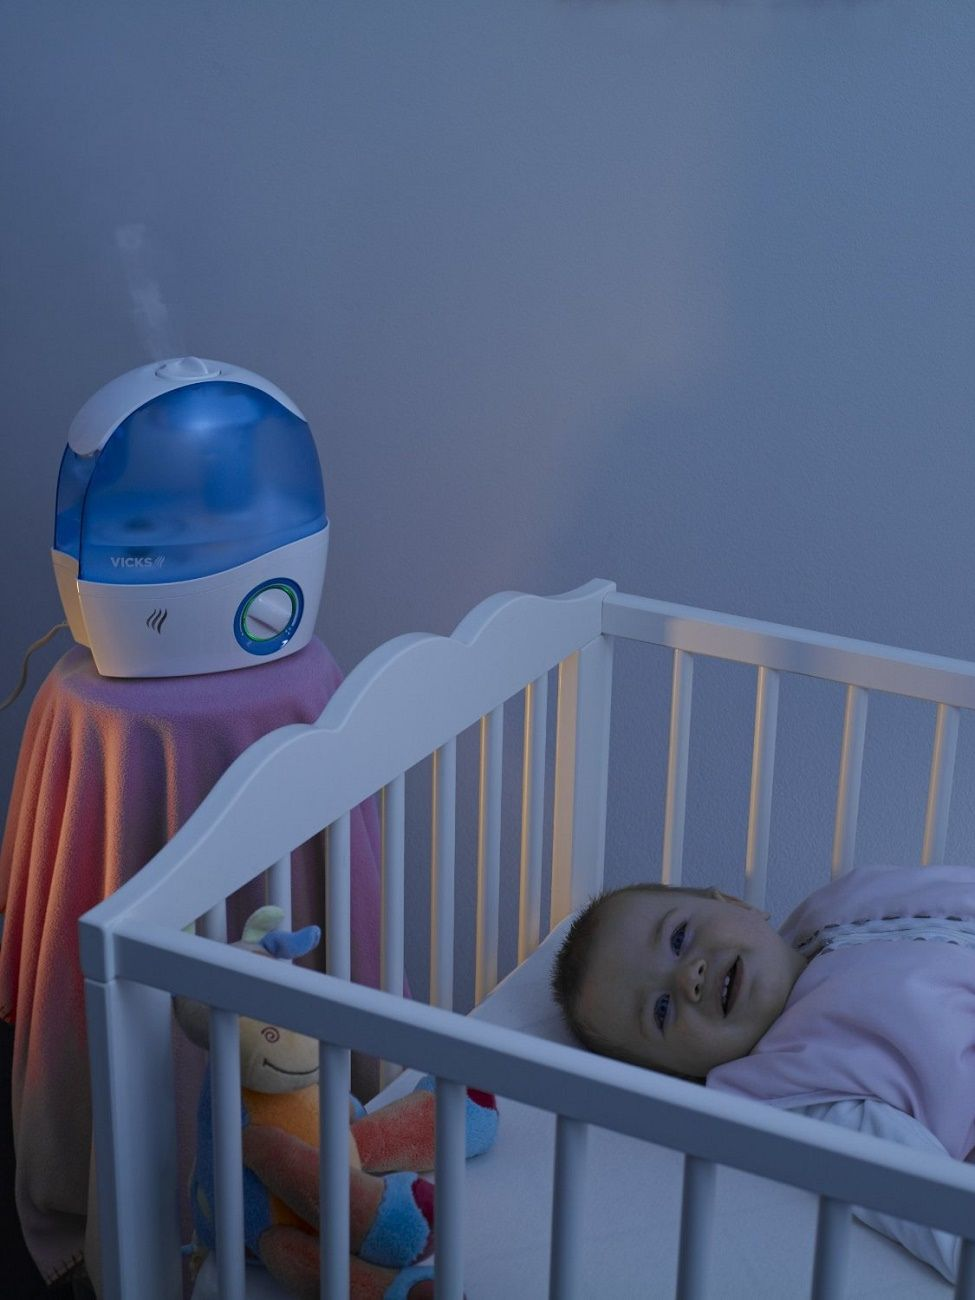 2019 Where To Put Humidifier In Baby Room - Best Home Furniture Check More At Http://www.itscultured.com/wh… | Baby Humidifier, Humidifier Benefits, Baby Room Decor